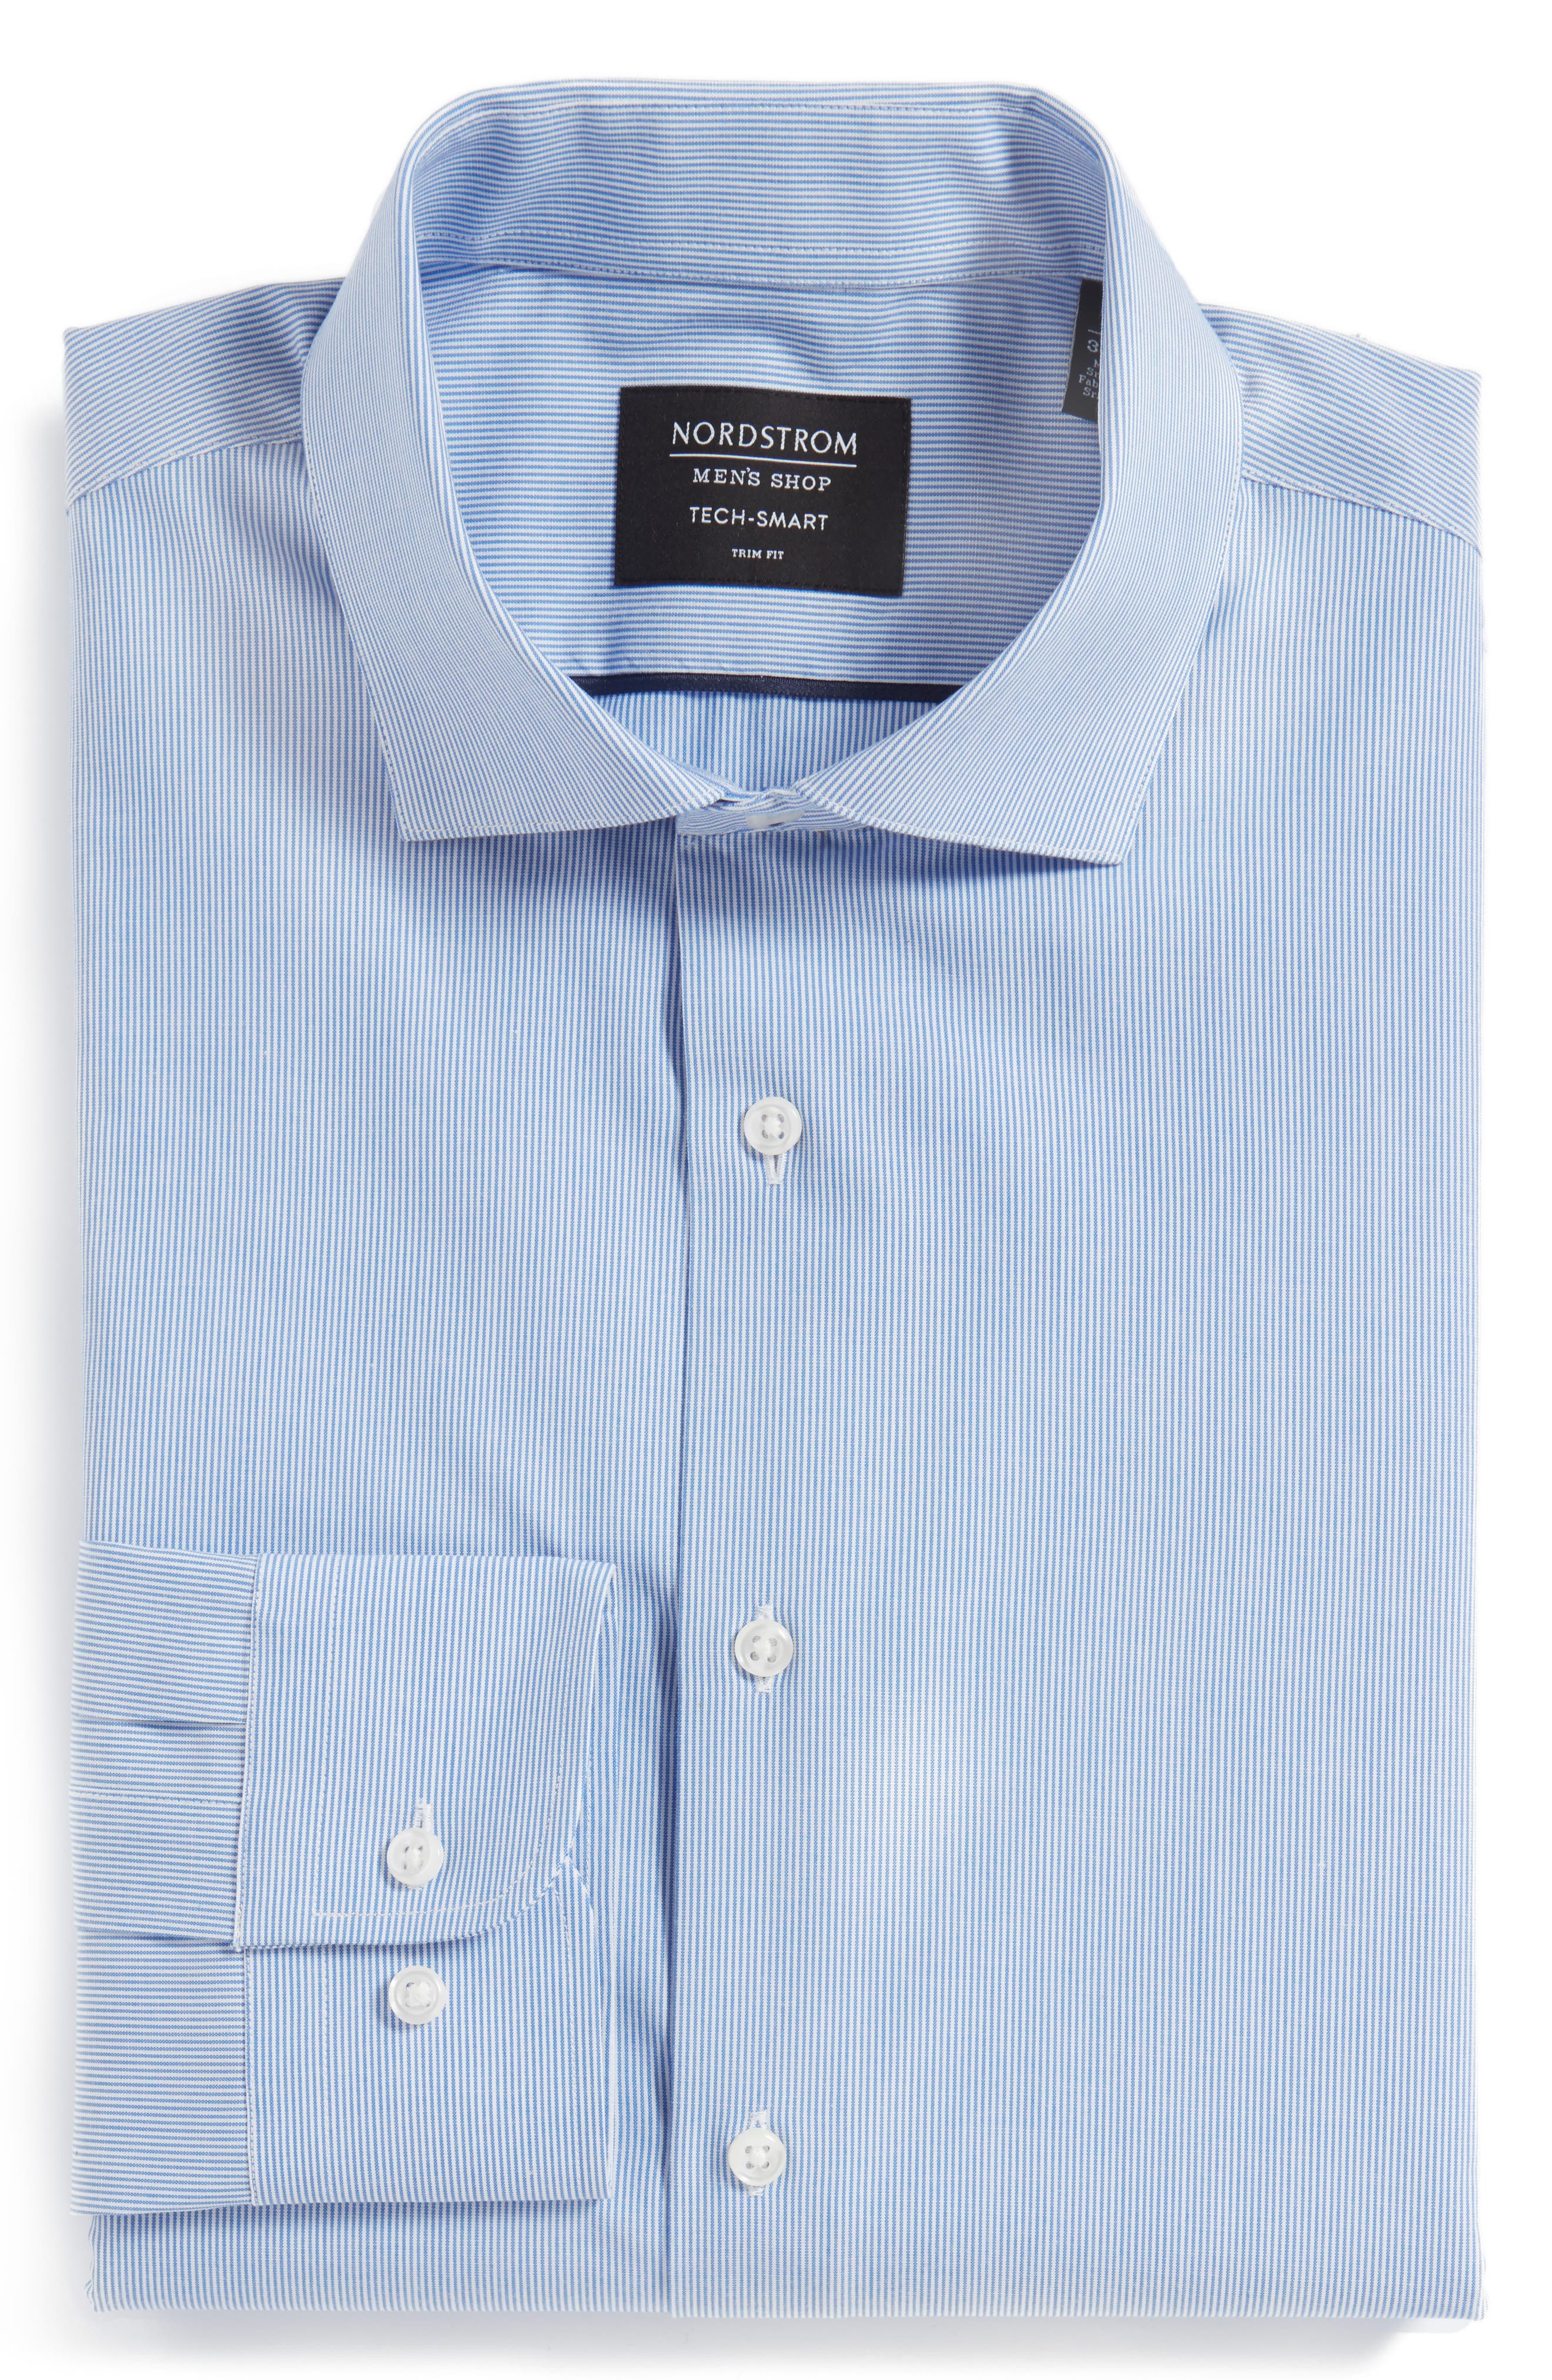 Tech-Smart Trim Fit Stretch Stripe Dress Shirt,                             Alternate thumbnail 4, color,                             Blue Yonder